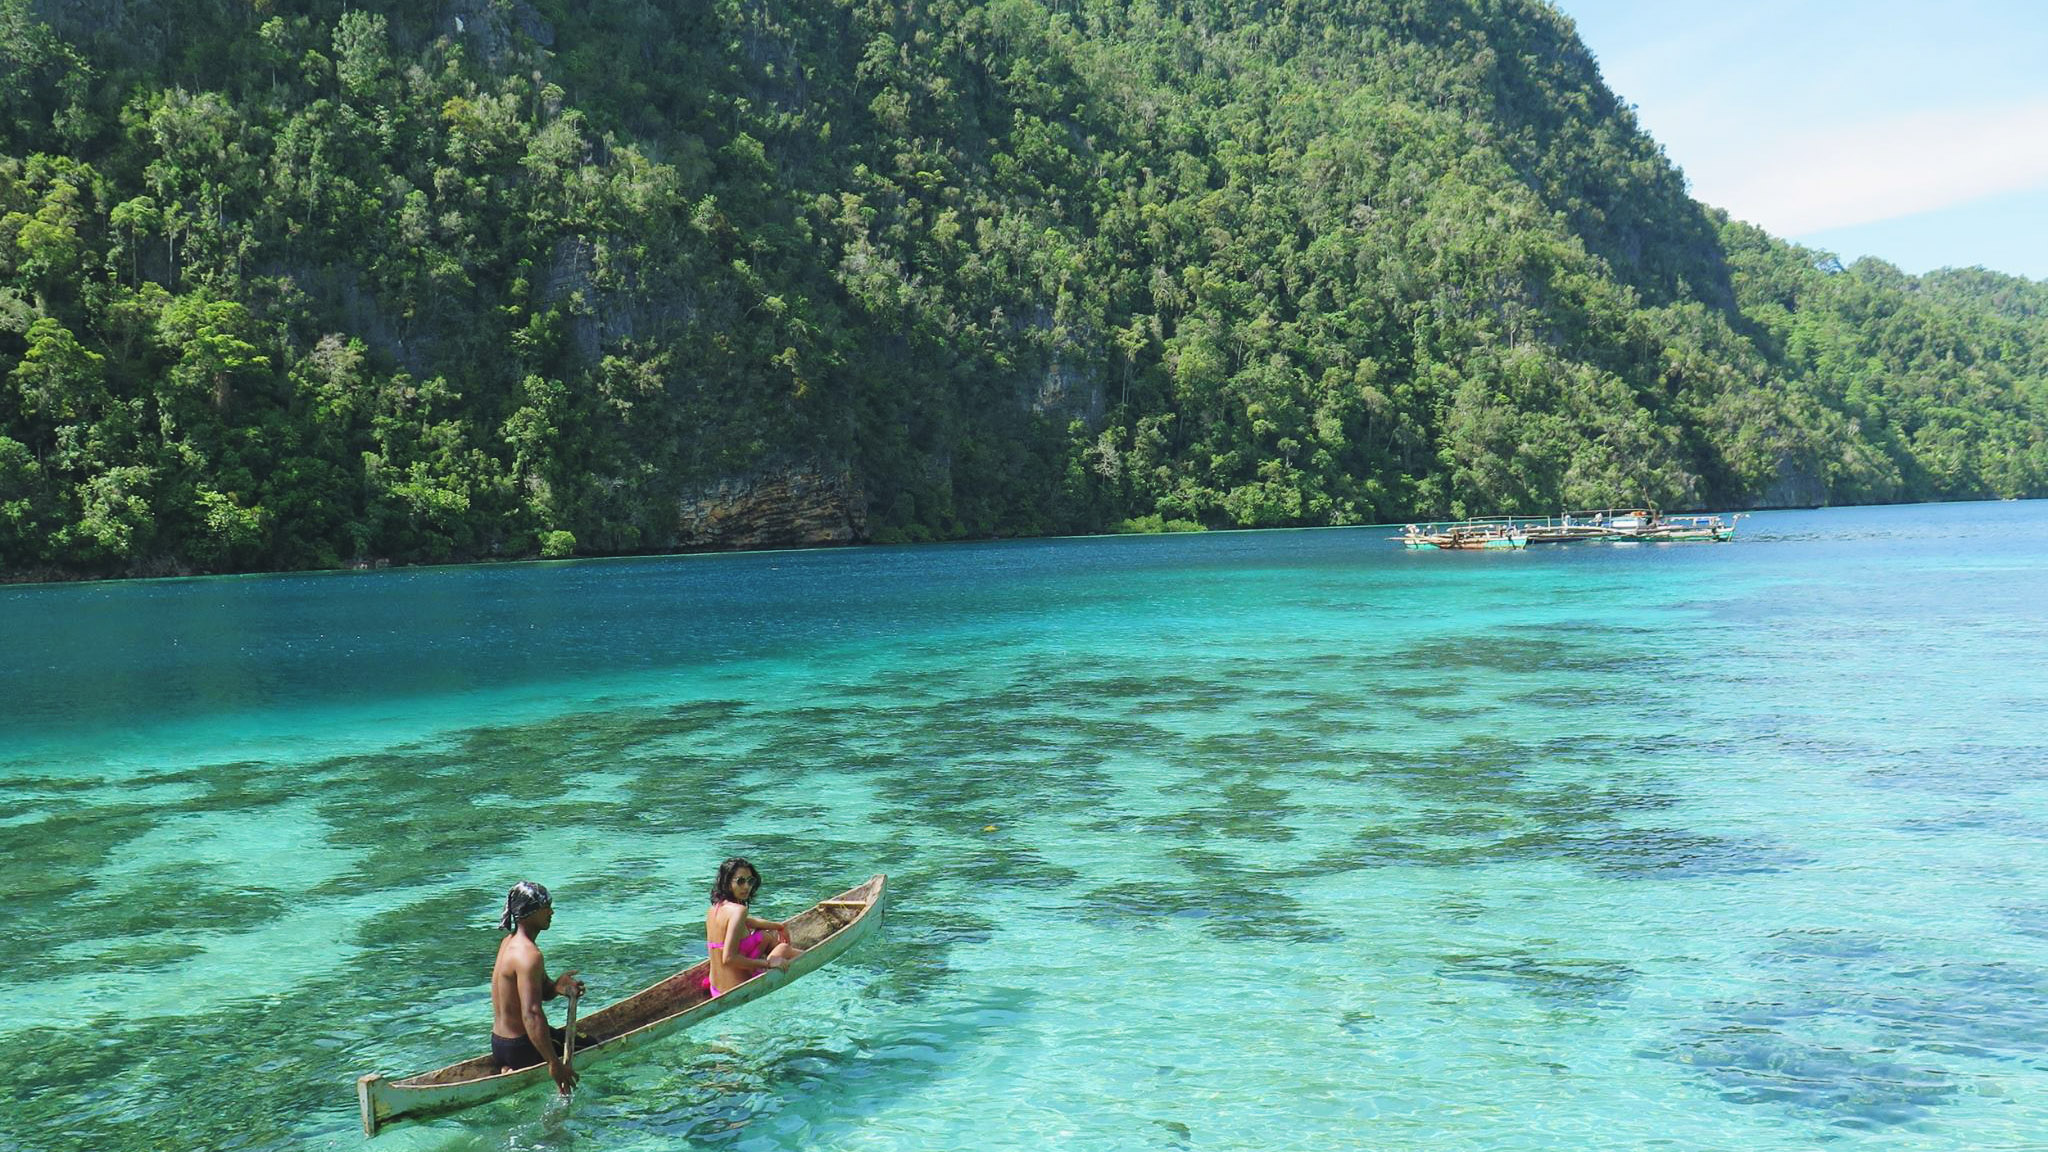 Sulawesi discover south east 3.jpg